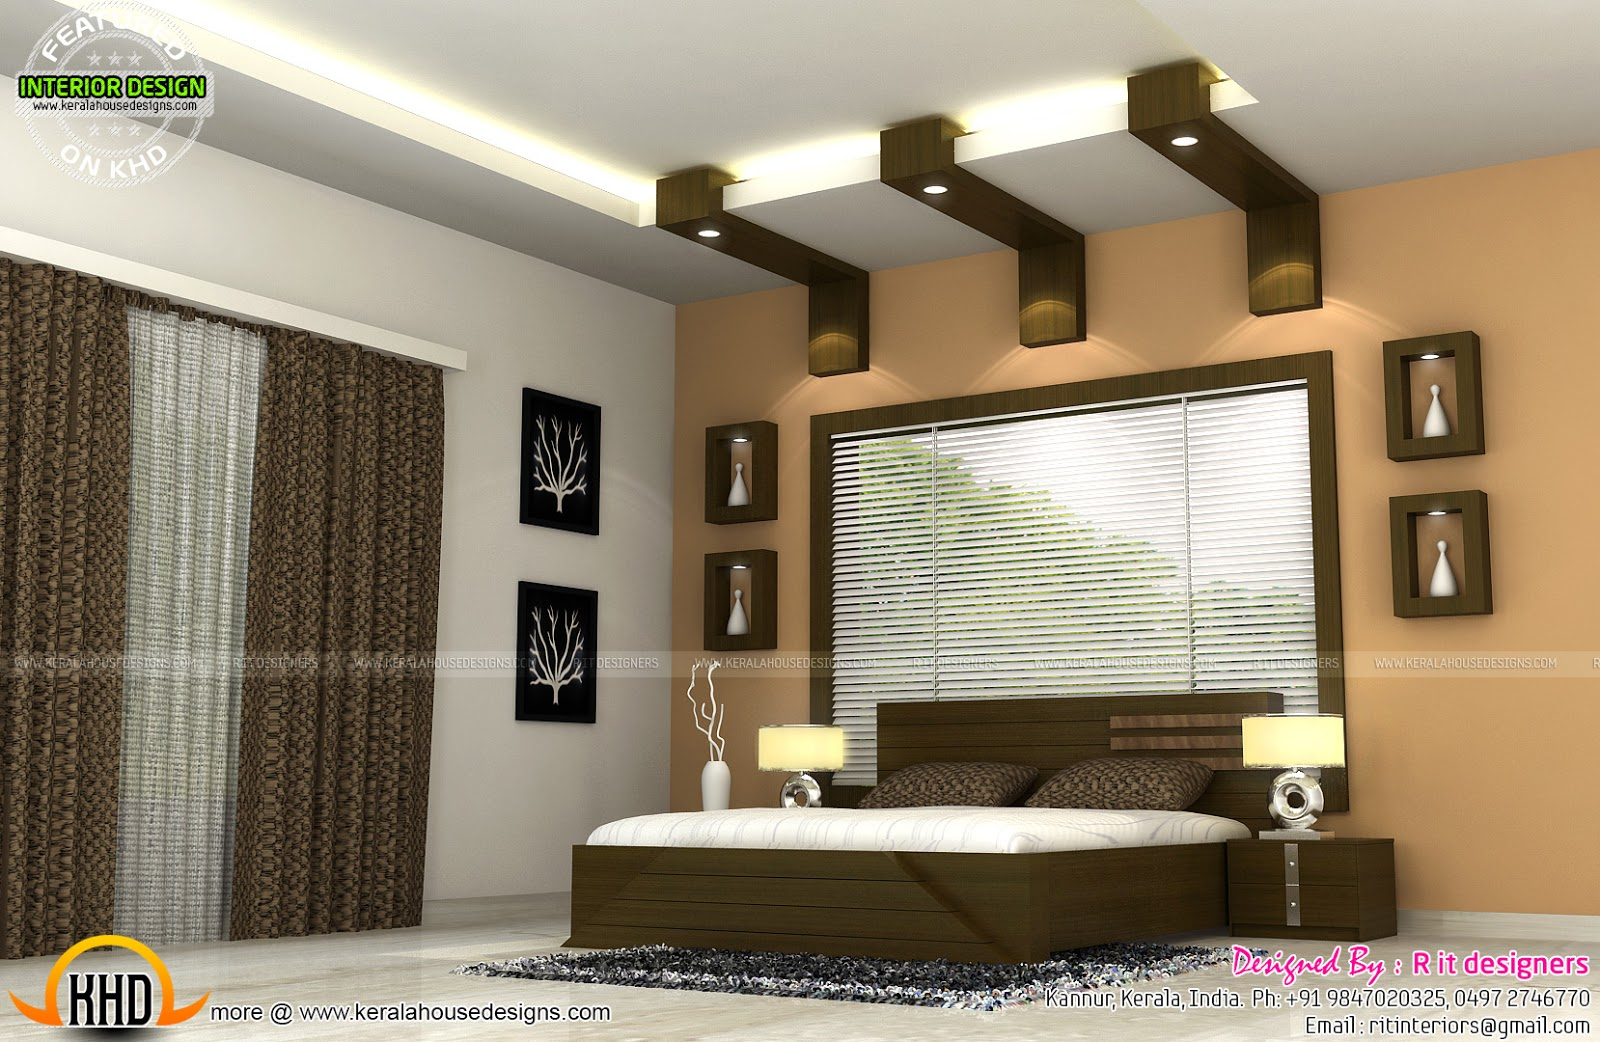 Interiors of bedrooms and kitchen kerala home design and Home interior ideas